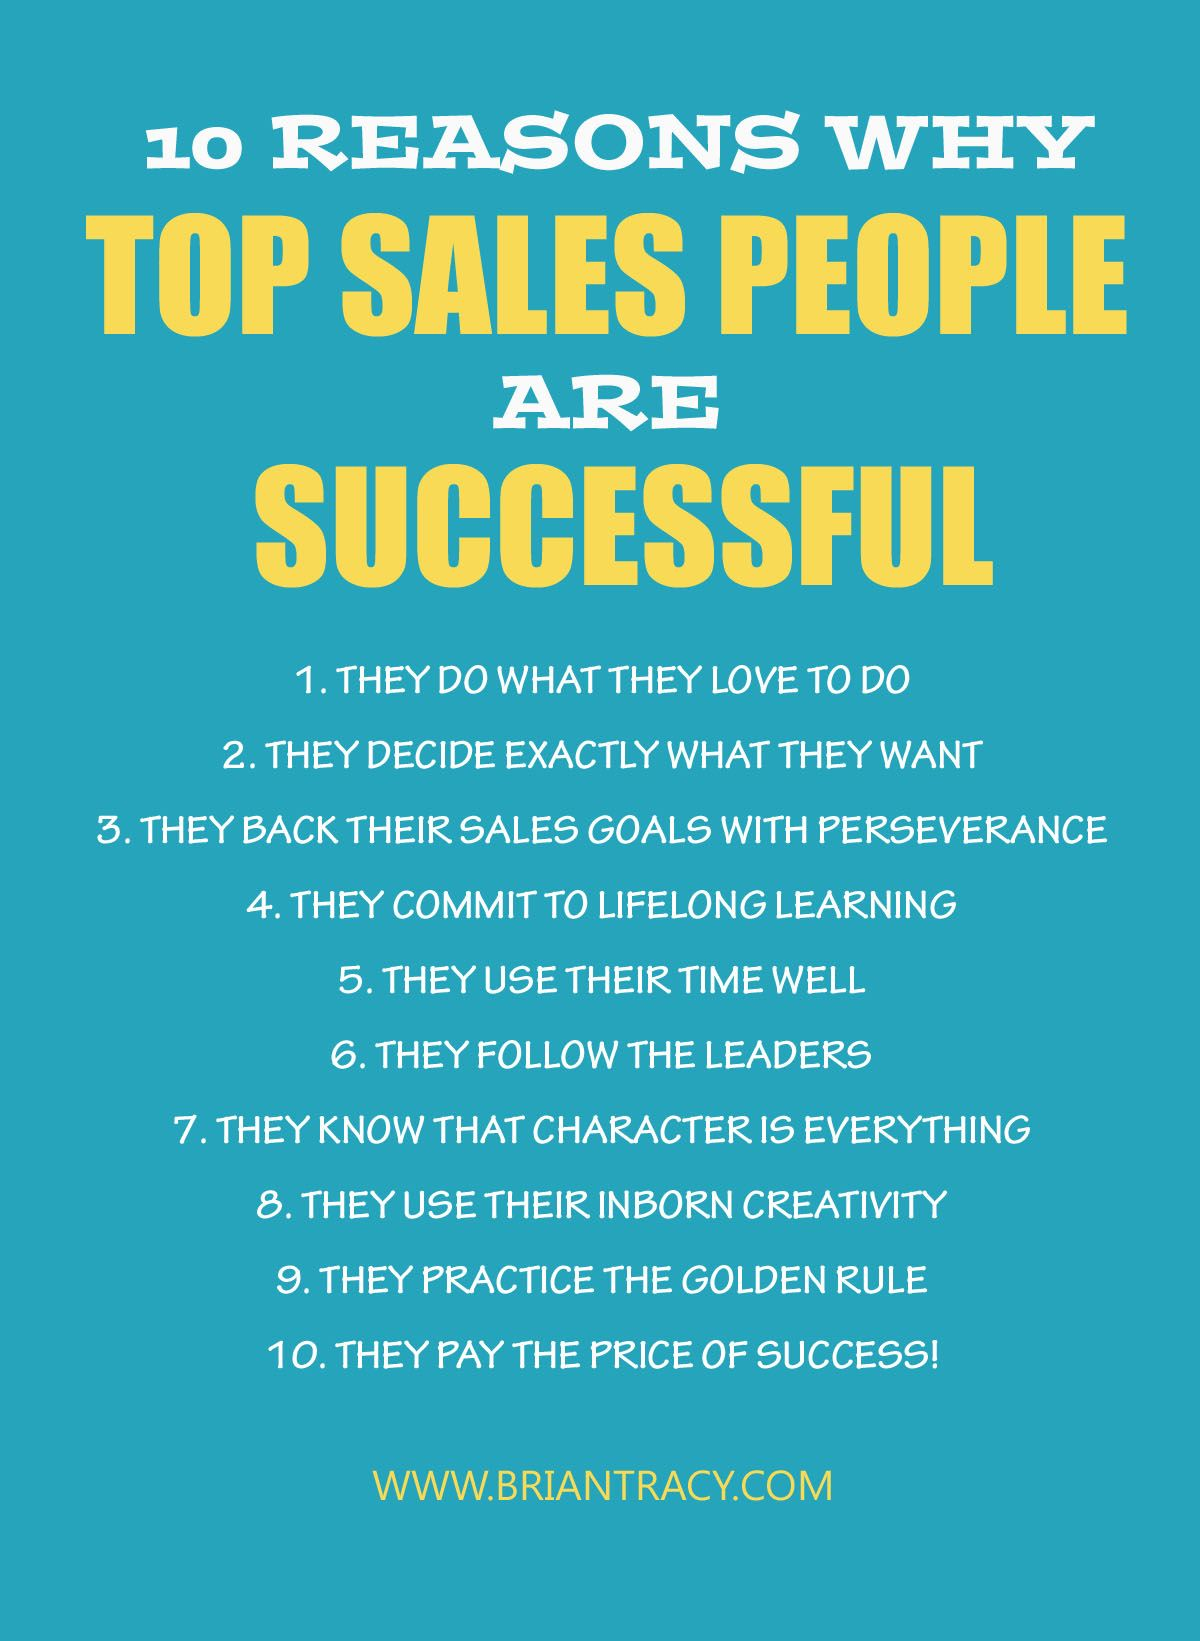 Reasons Why Makeup Is Important: 10 Reasons Why Top Sales People Are Successful: Boost Your